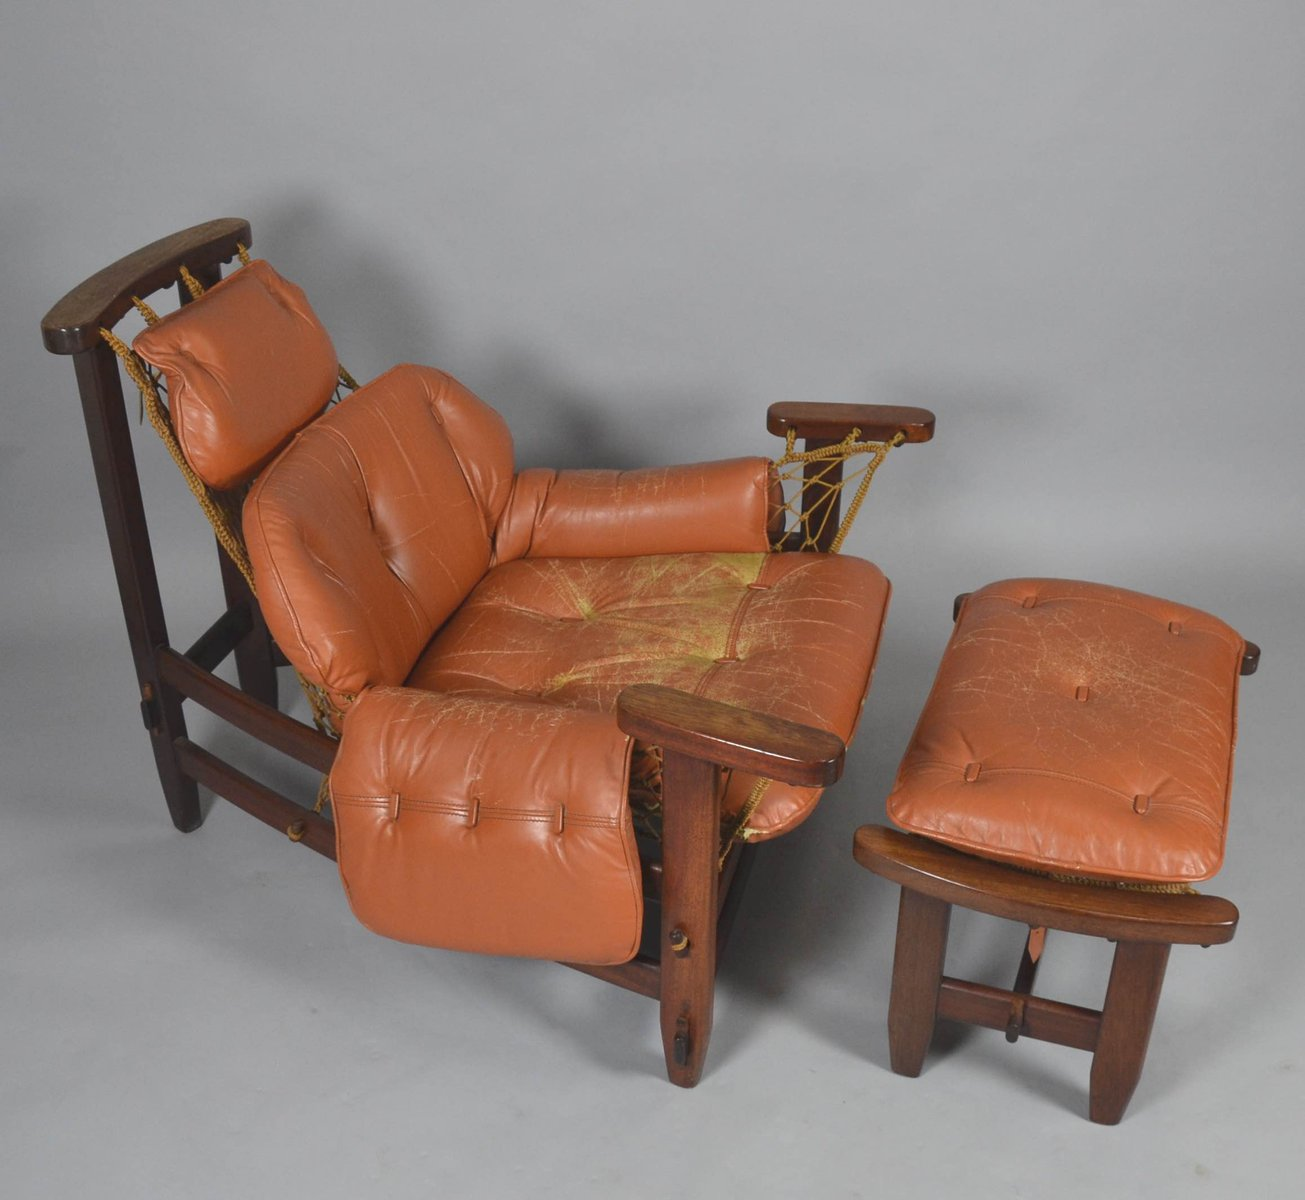 Wood Captain S Chair ~ Vintage captain s chair with ottoman by jean gillon for